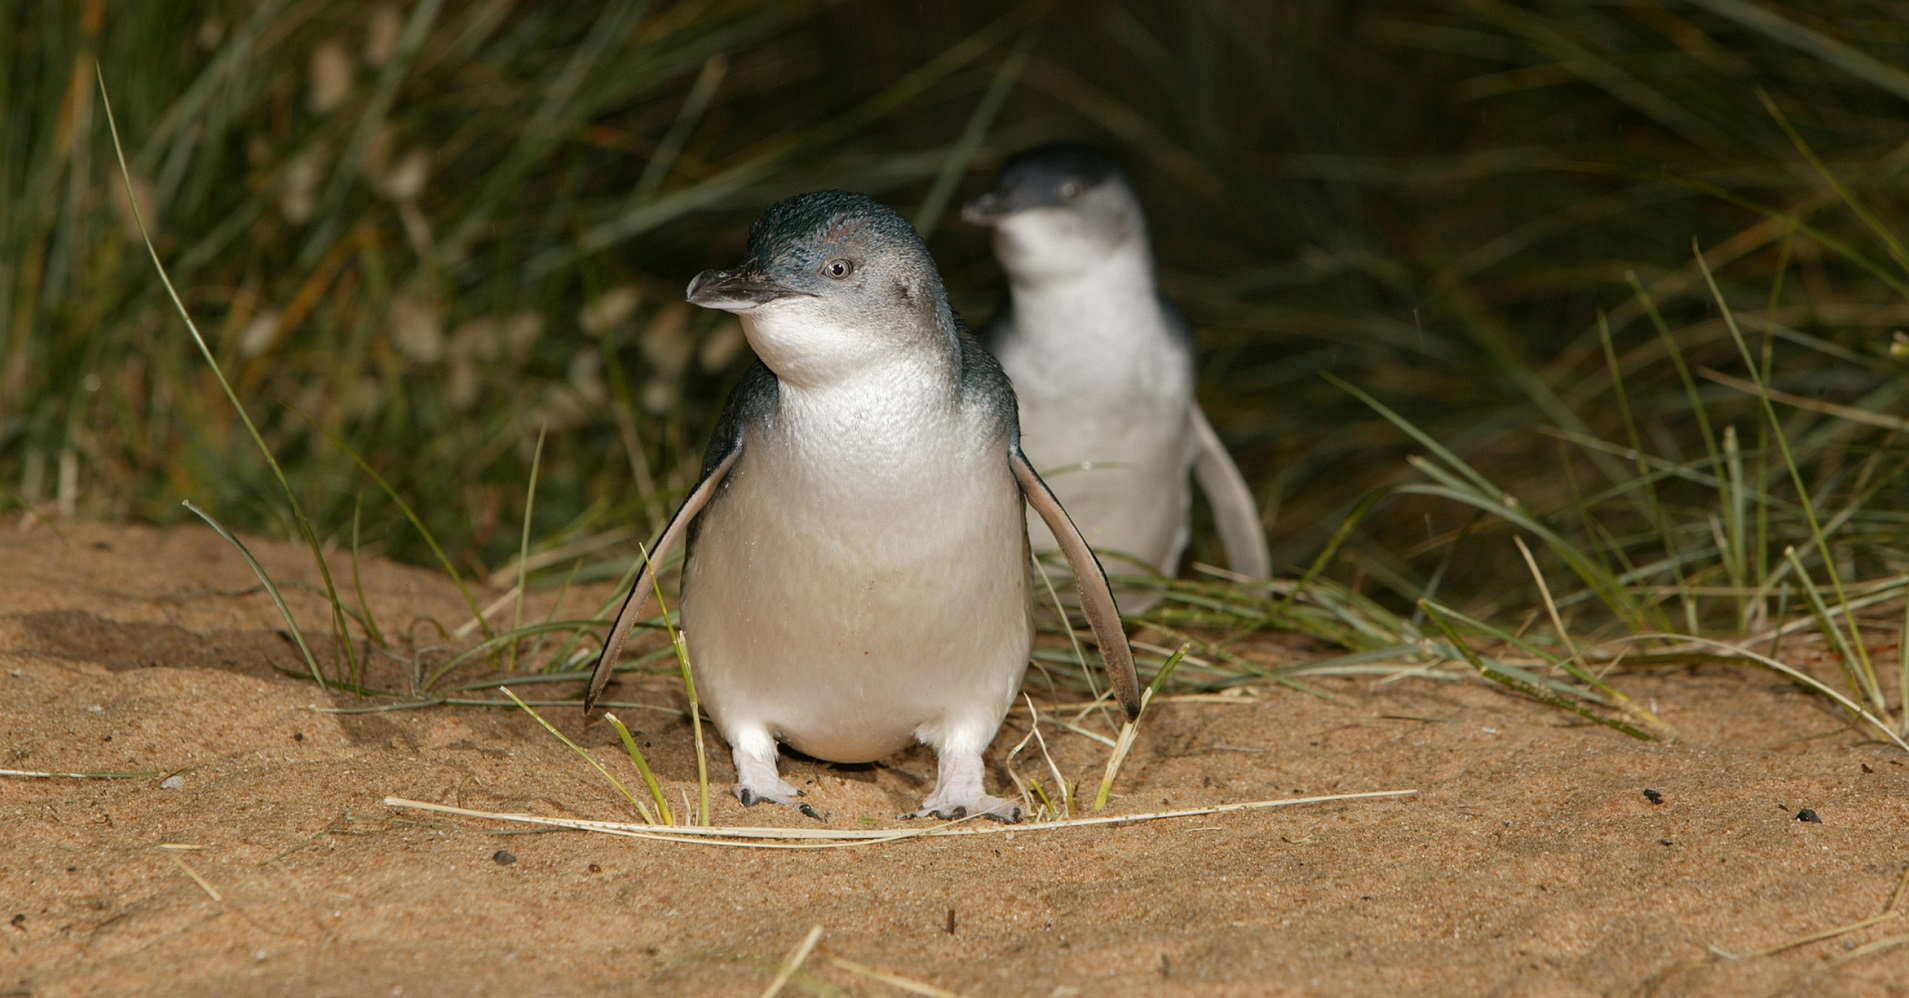 Watching the Penguin Parade with the Penguin Plus Upgrade